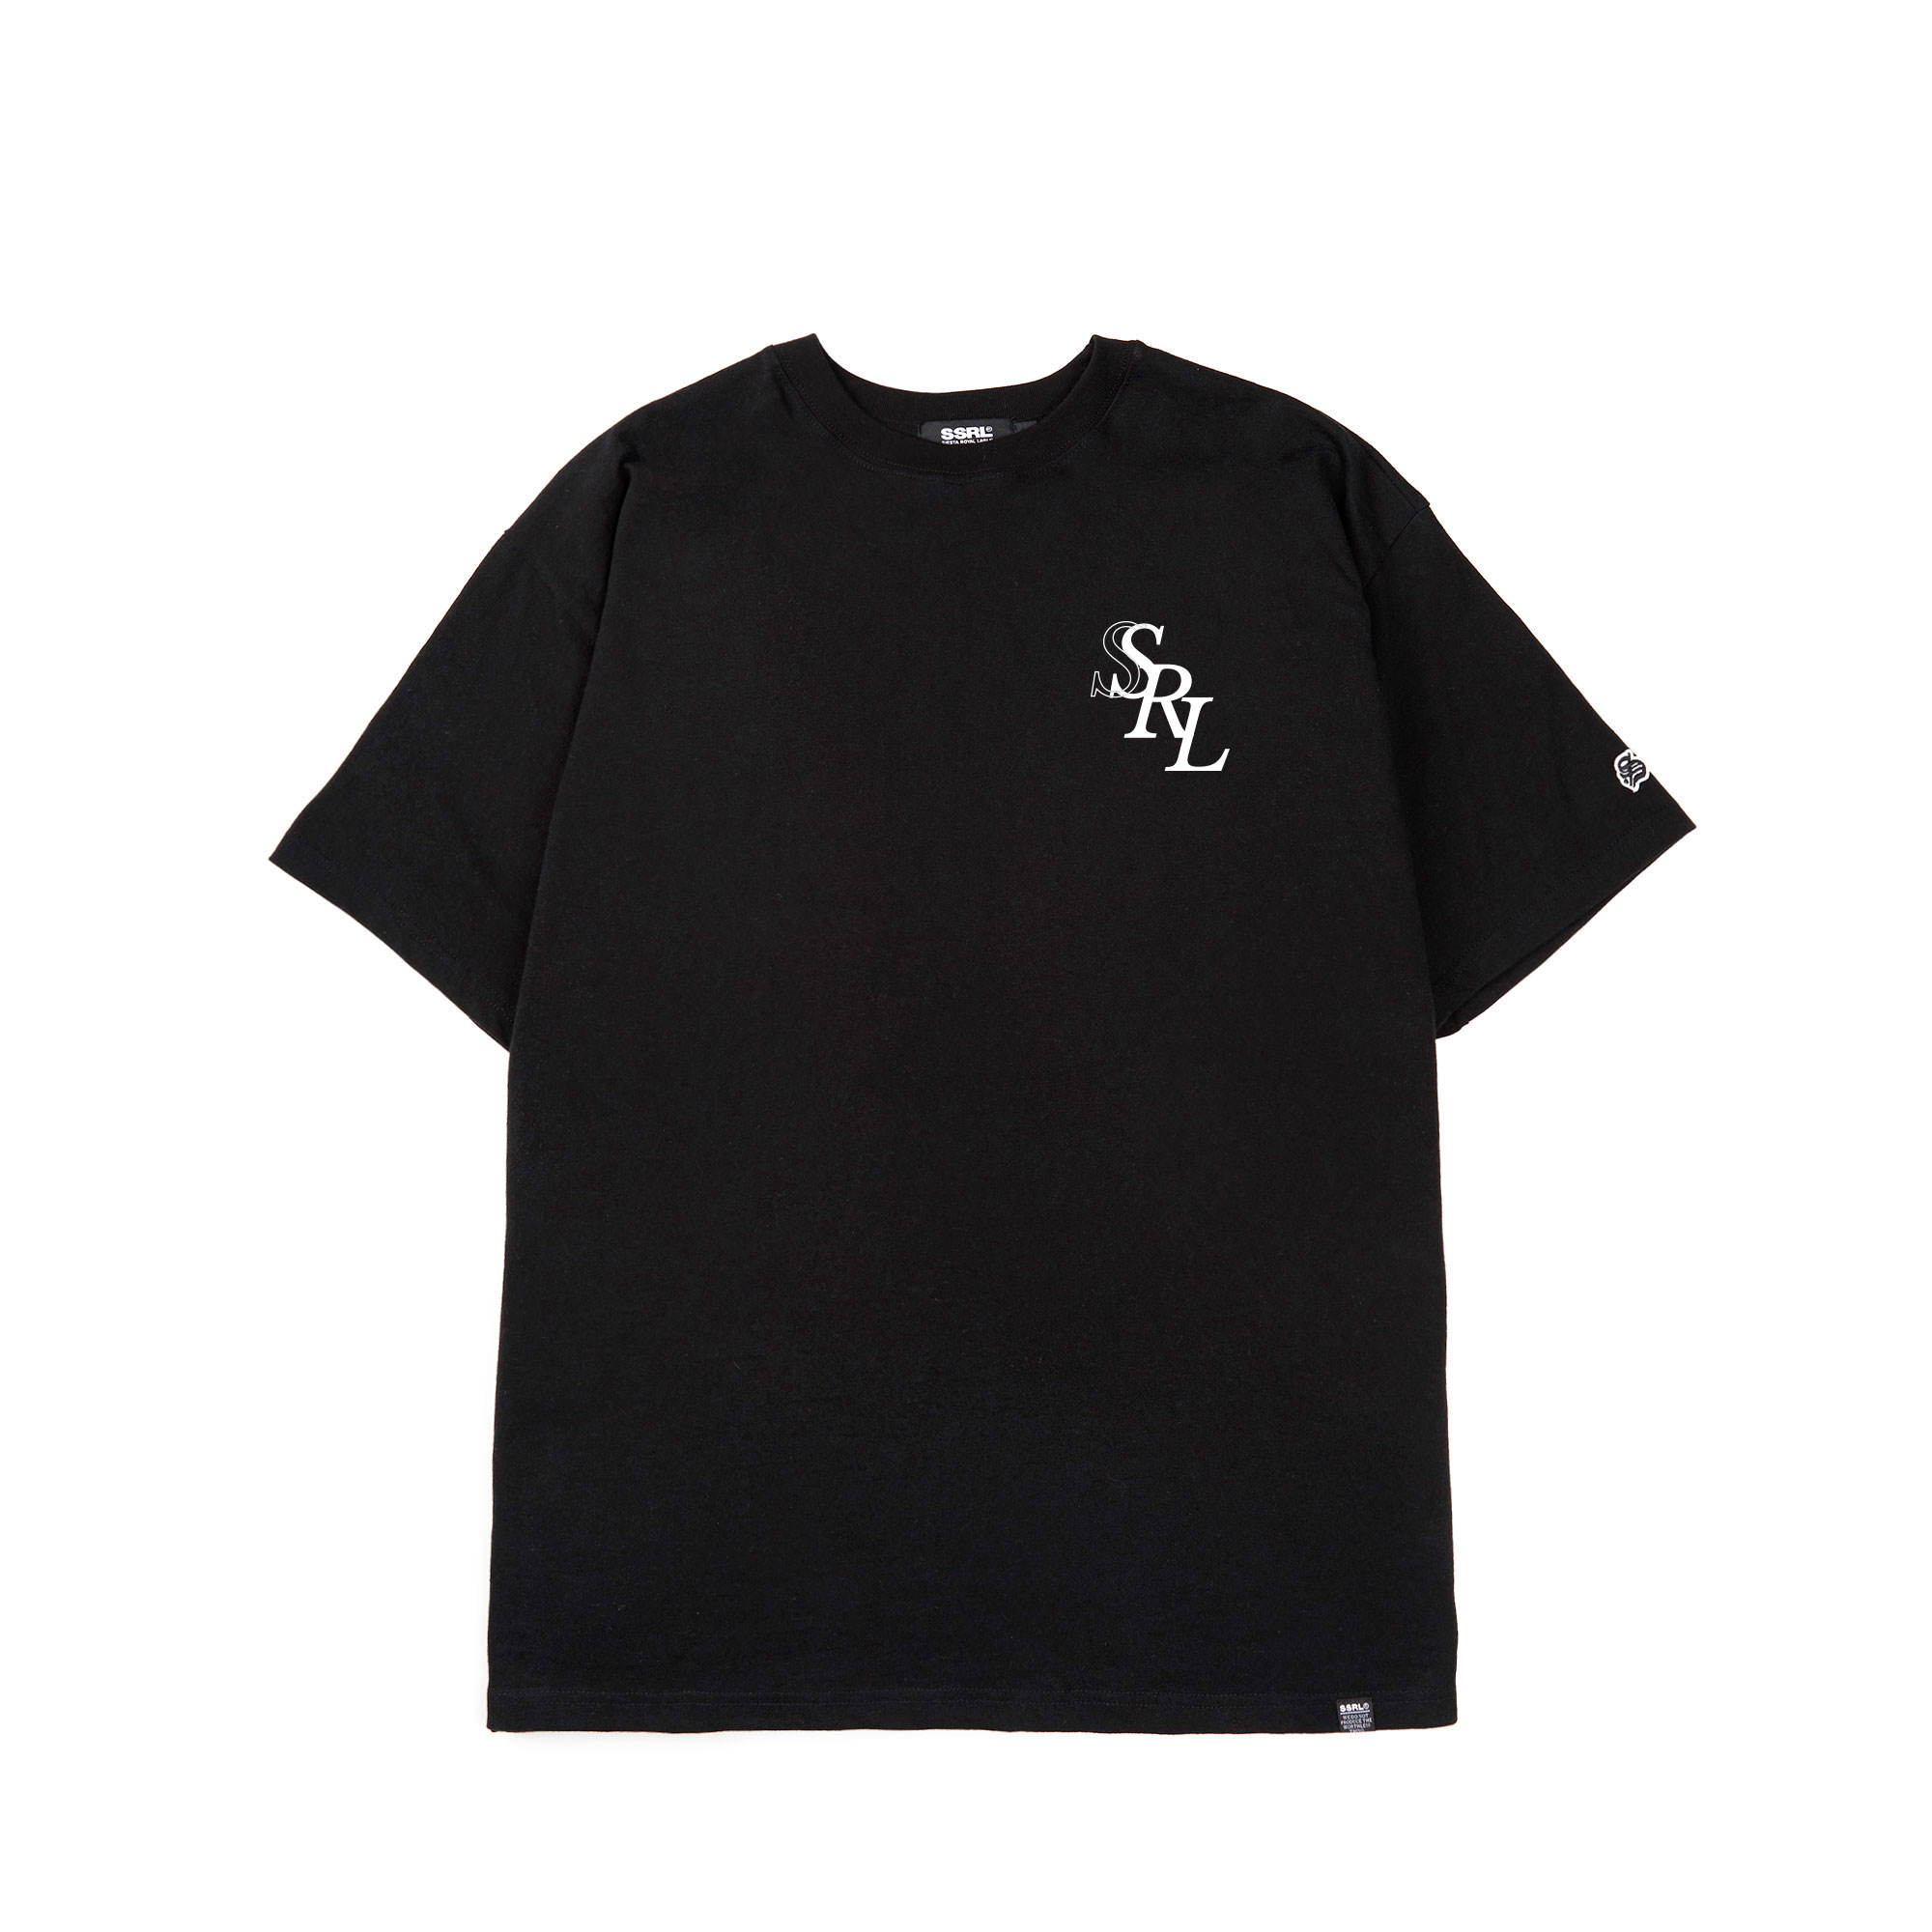 royal tee / black